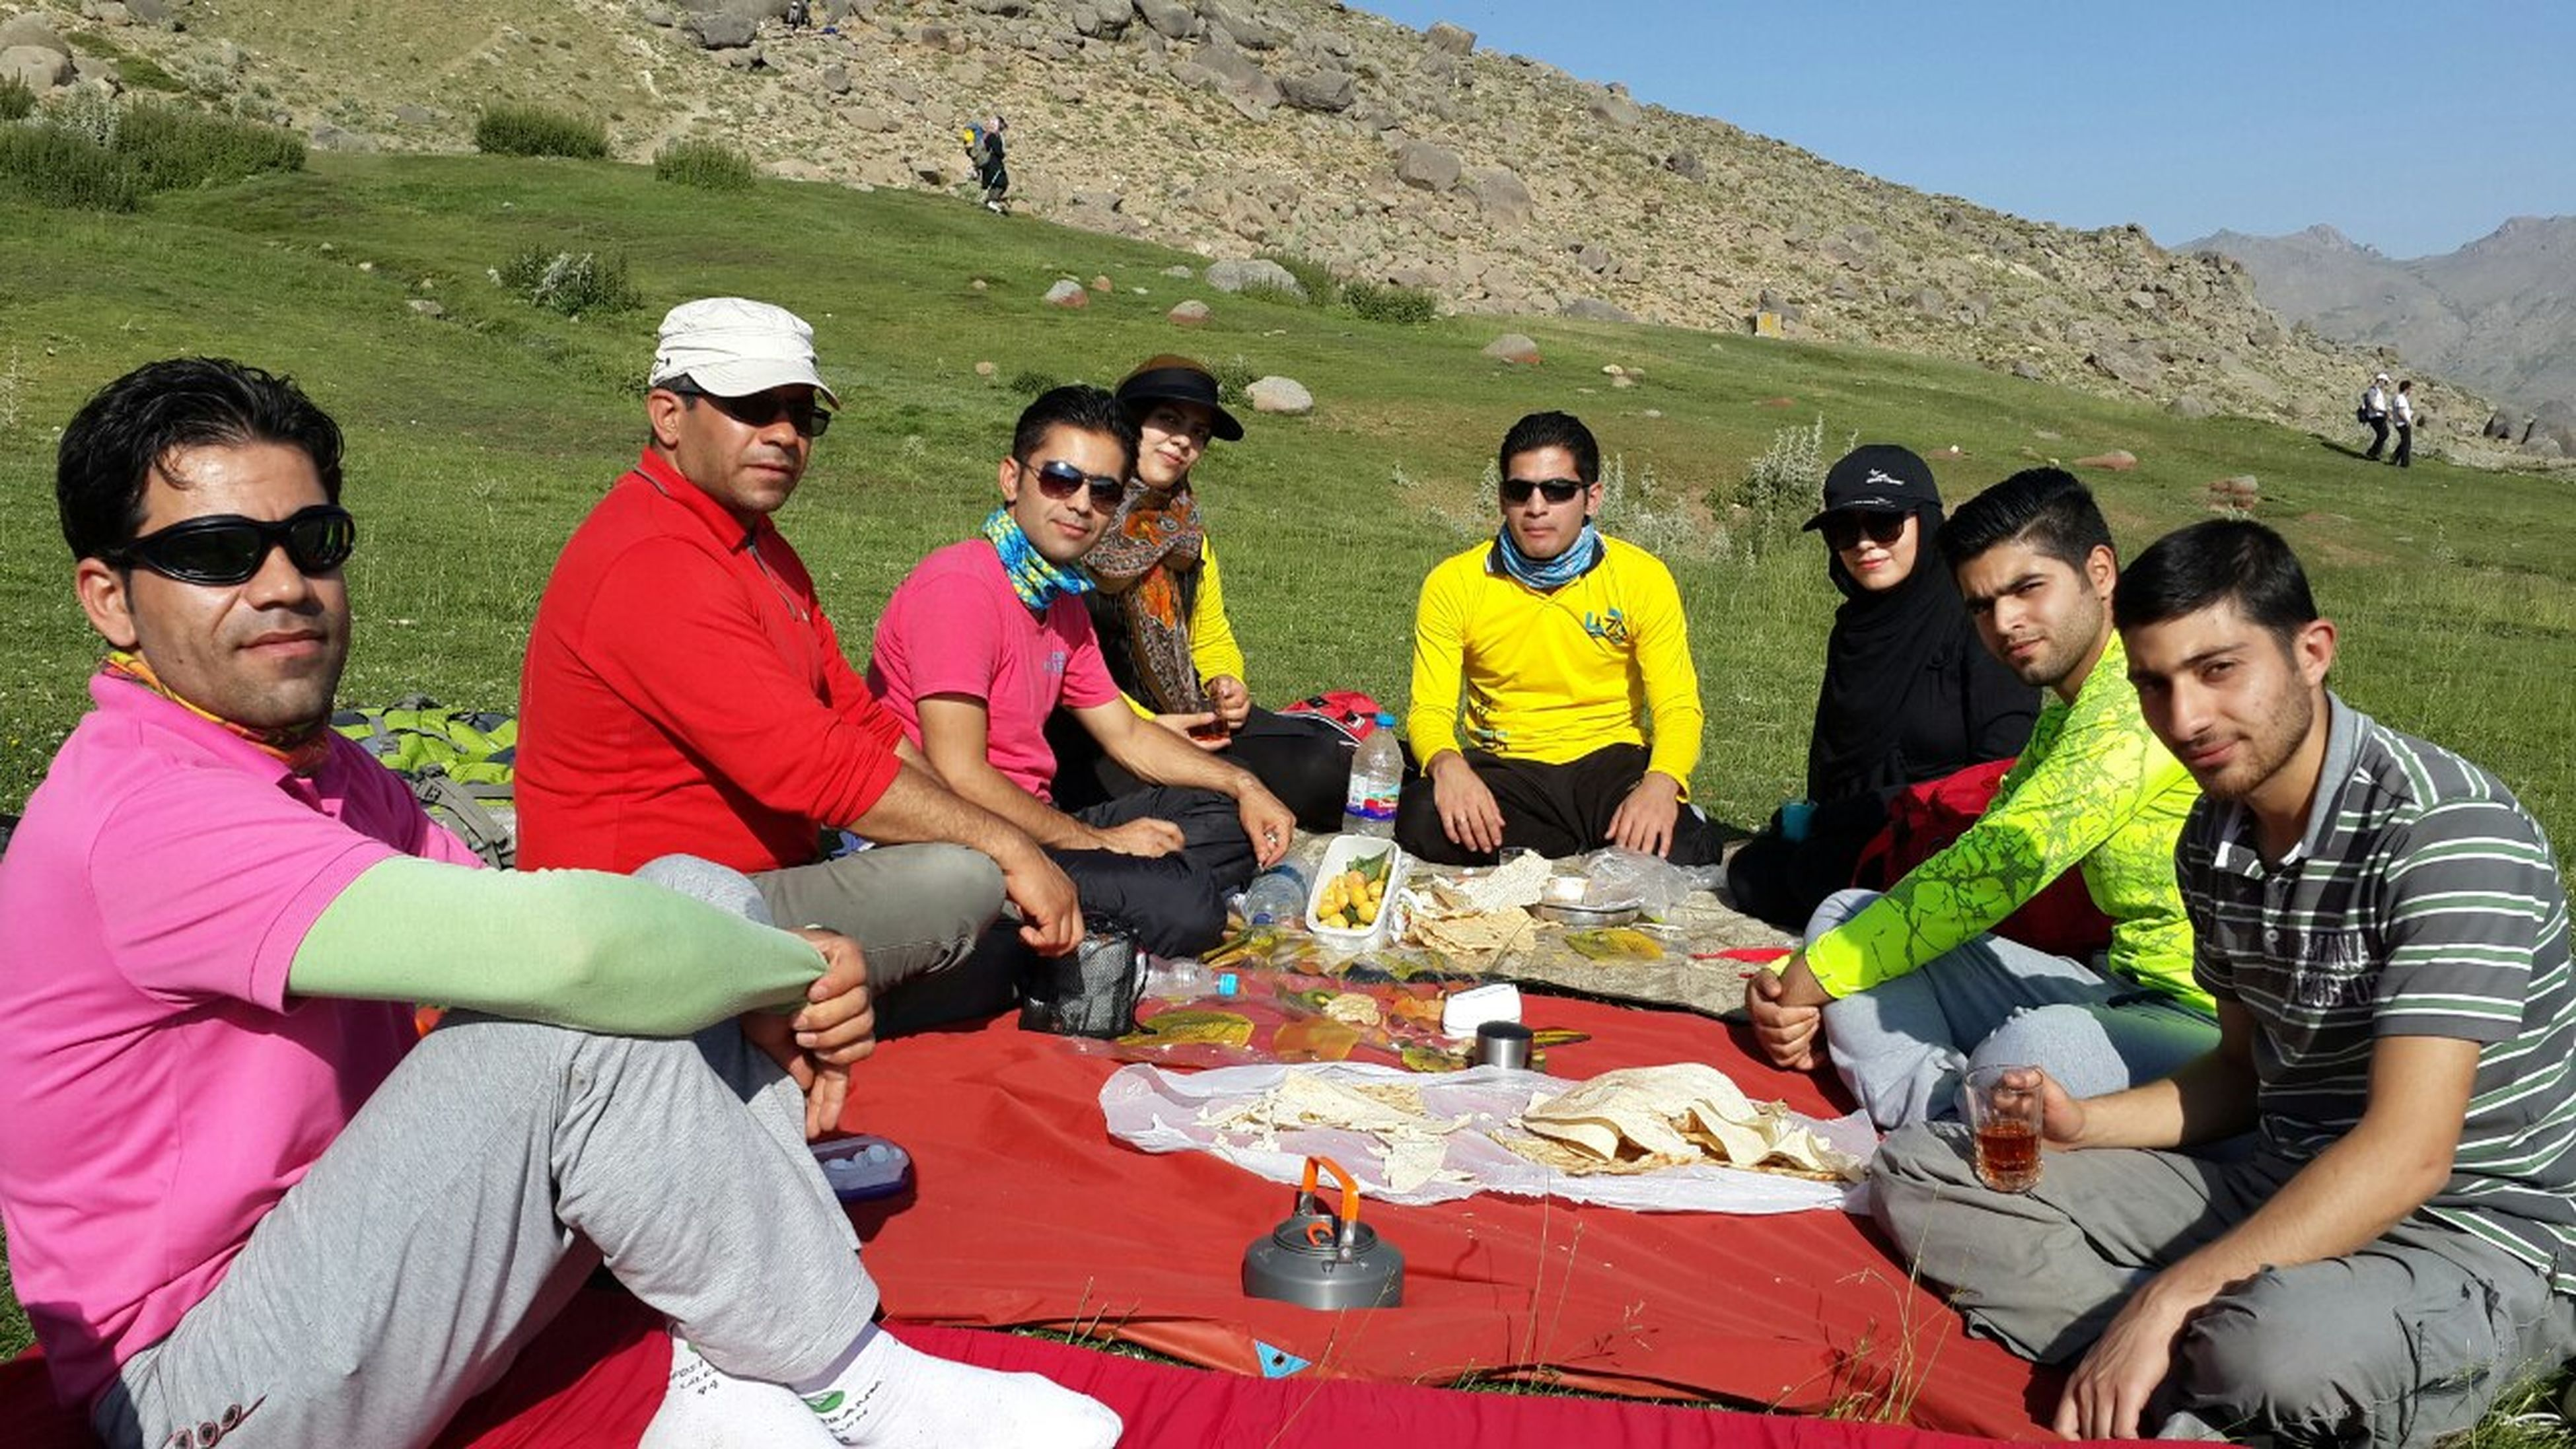 togetherness, leisure activity, lifestyles, sitting, friendship, mixed age range, standing, medium group of people, full length, casual clothing, front view, person, vacations, tourist, tourism, nature, enjoyment, day, tranquility, looking, outdoors, scenics, mountain